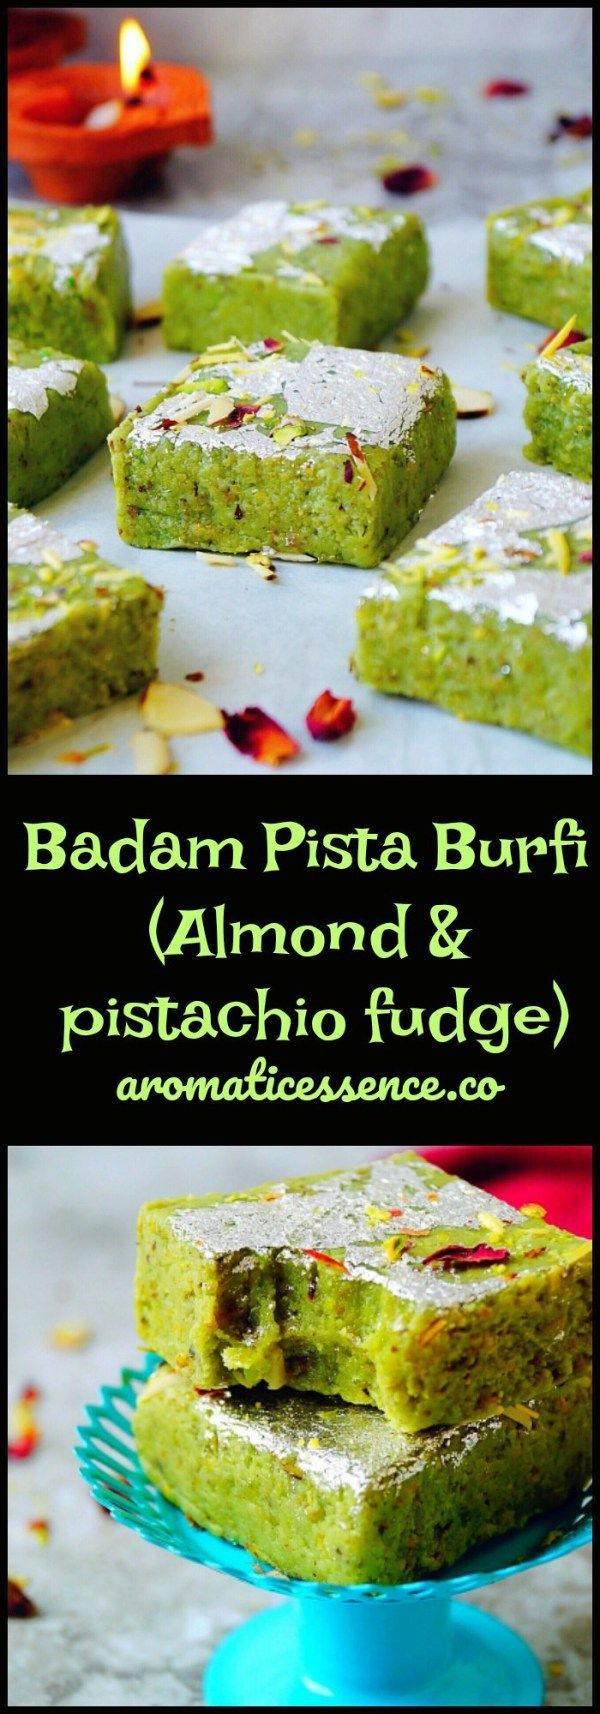 Soft, fudgy and melt in the mouth, Indian Badam pista burfi (almond & pistachio fudge)! It is made without mawa/khoya (evaporated milk solids). You just need few basic ingredients to make this burfi, which is ready within minutes. #burfi #diwalisweets #ba